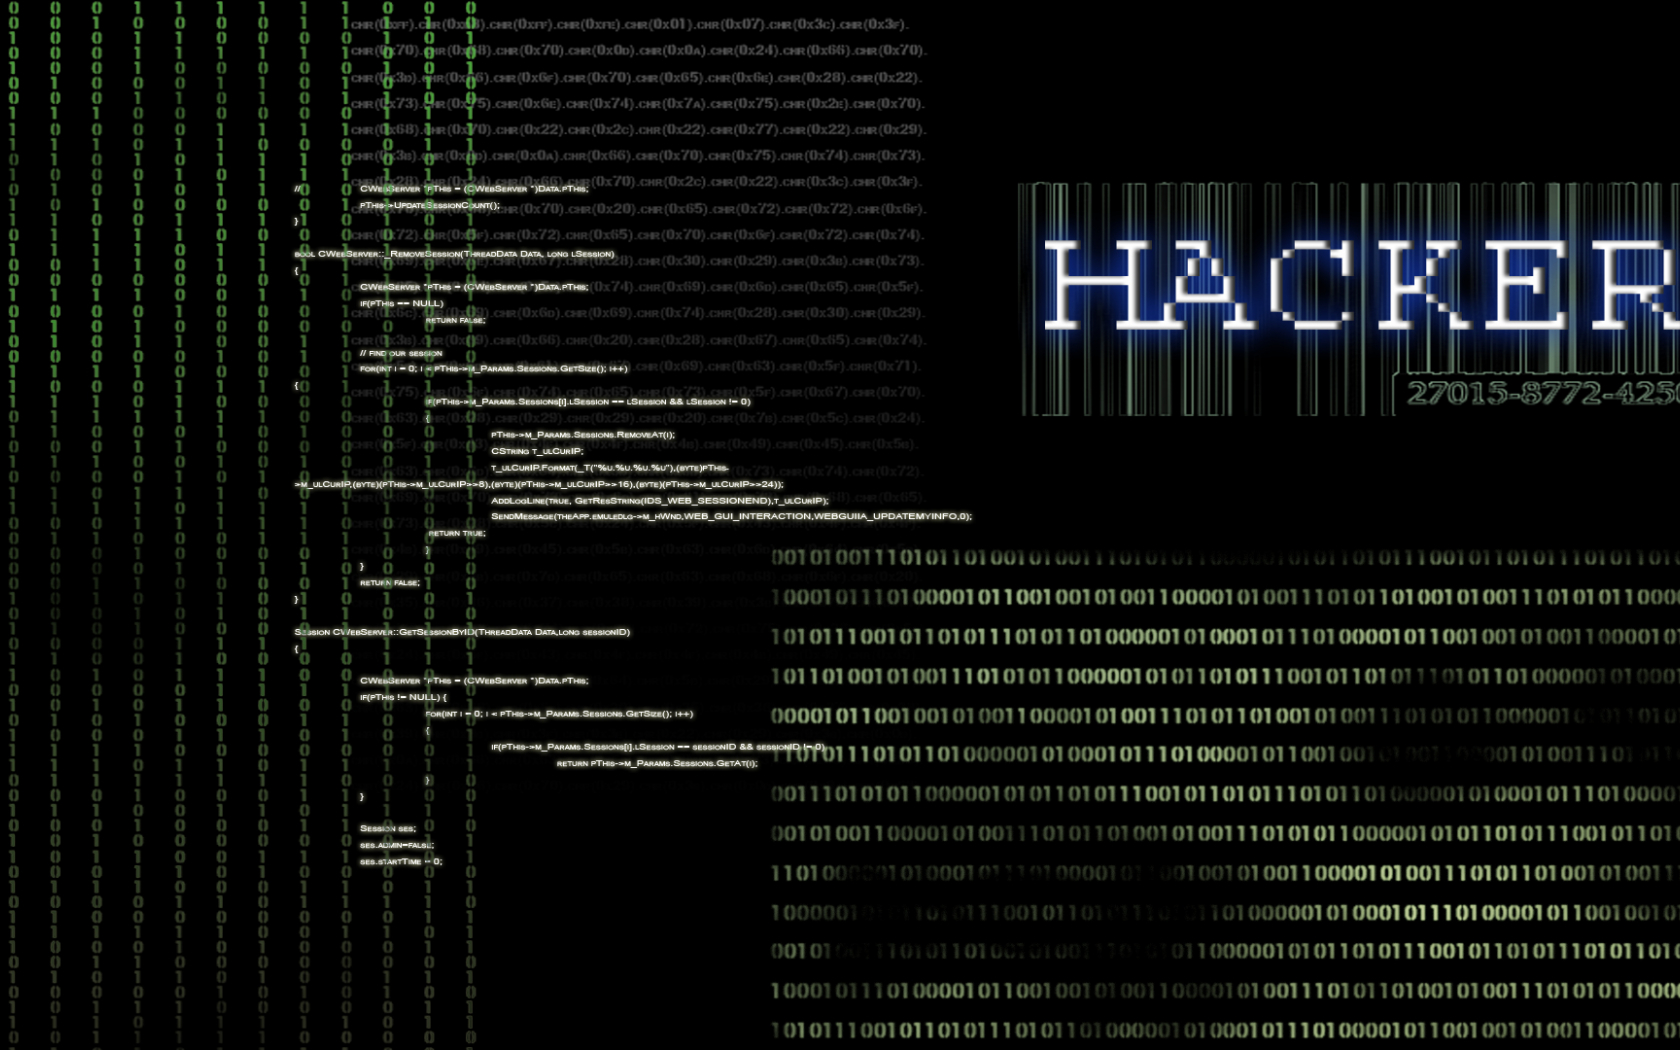 Free Download Hacker Wallpaper By Vanilla23 1920x1080 For Your